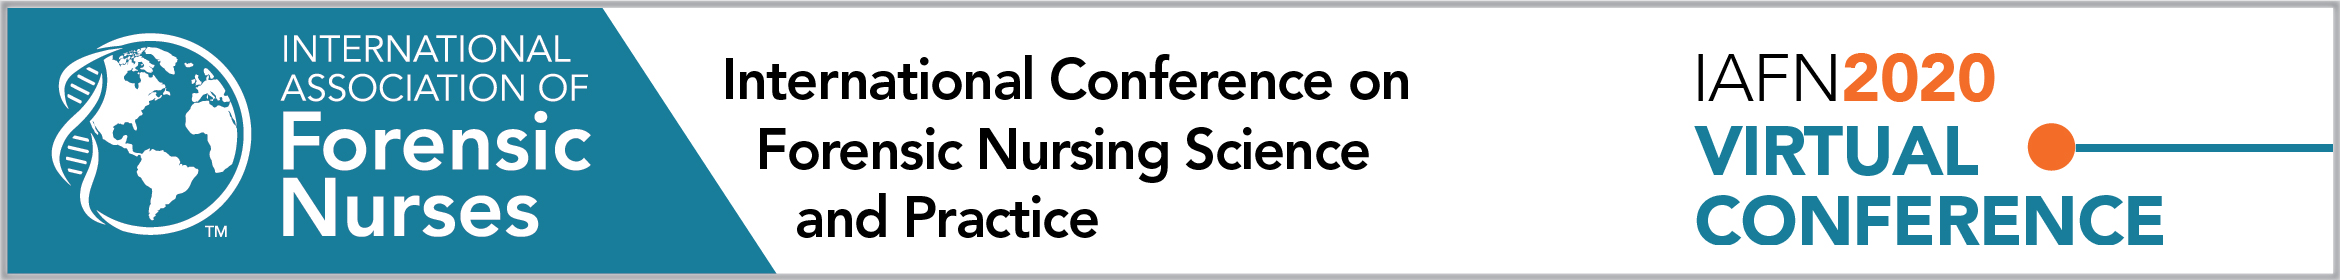 IAFN2020 Virtual Conference Main banner